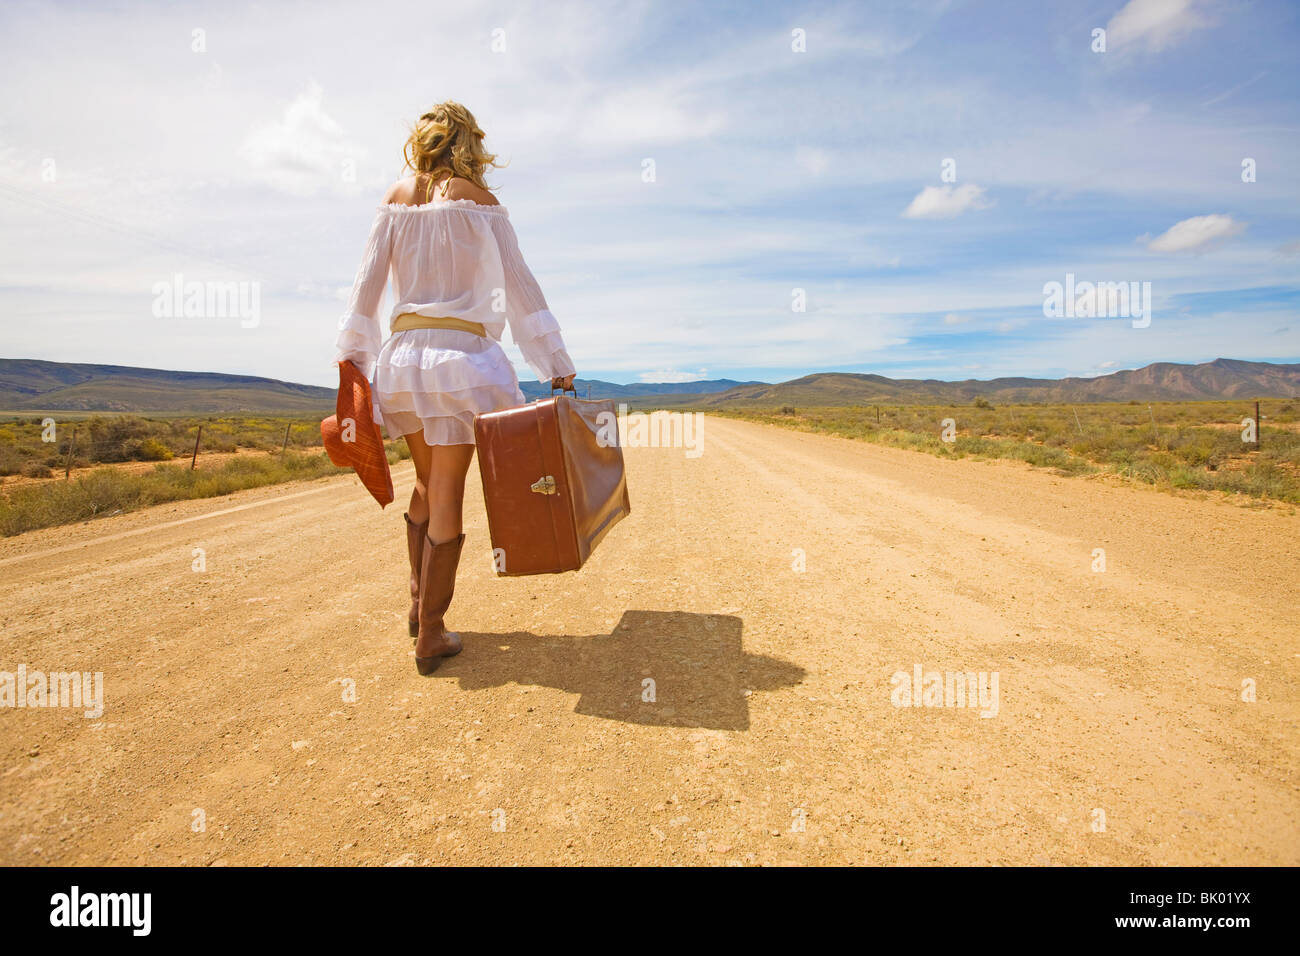 Lonely woman on desert road - Stock Image